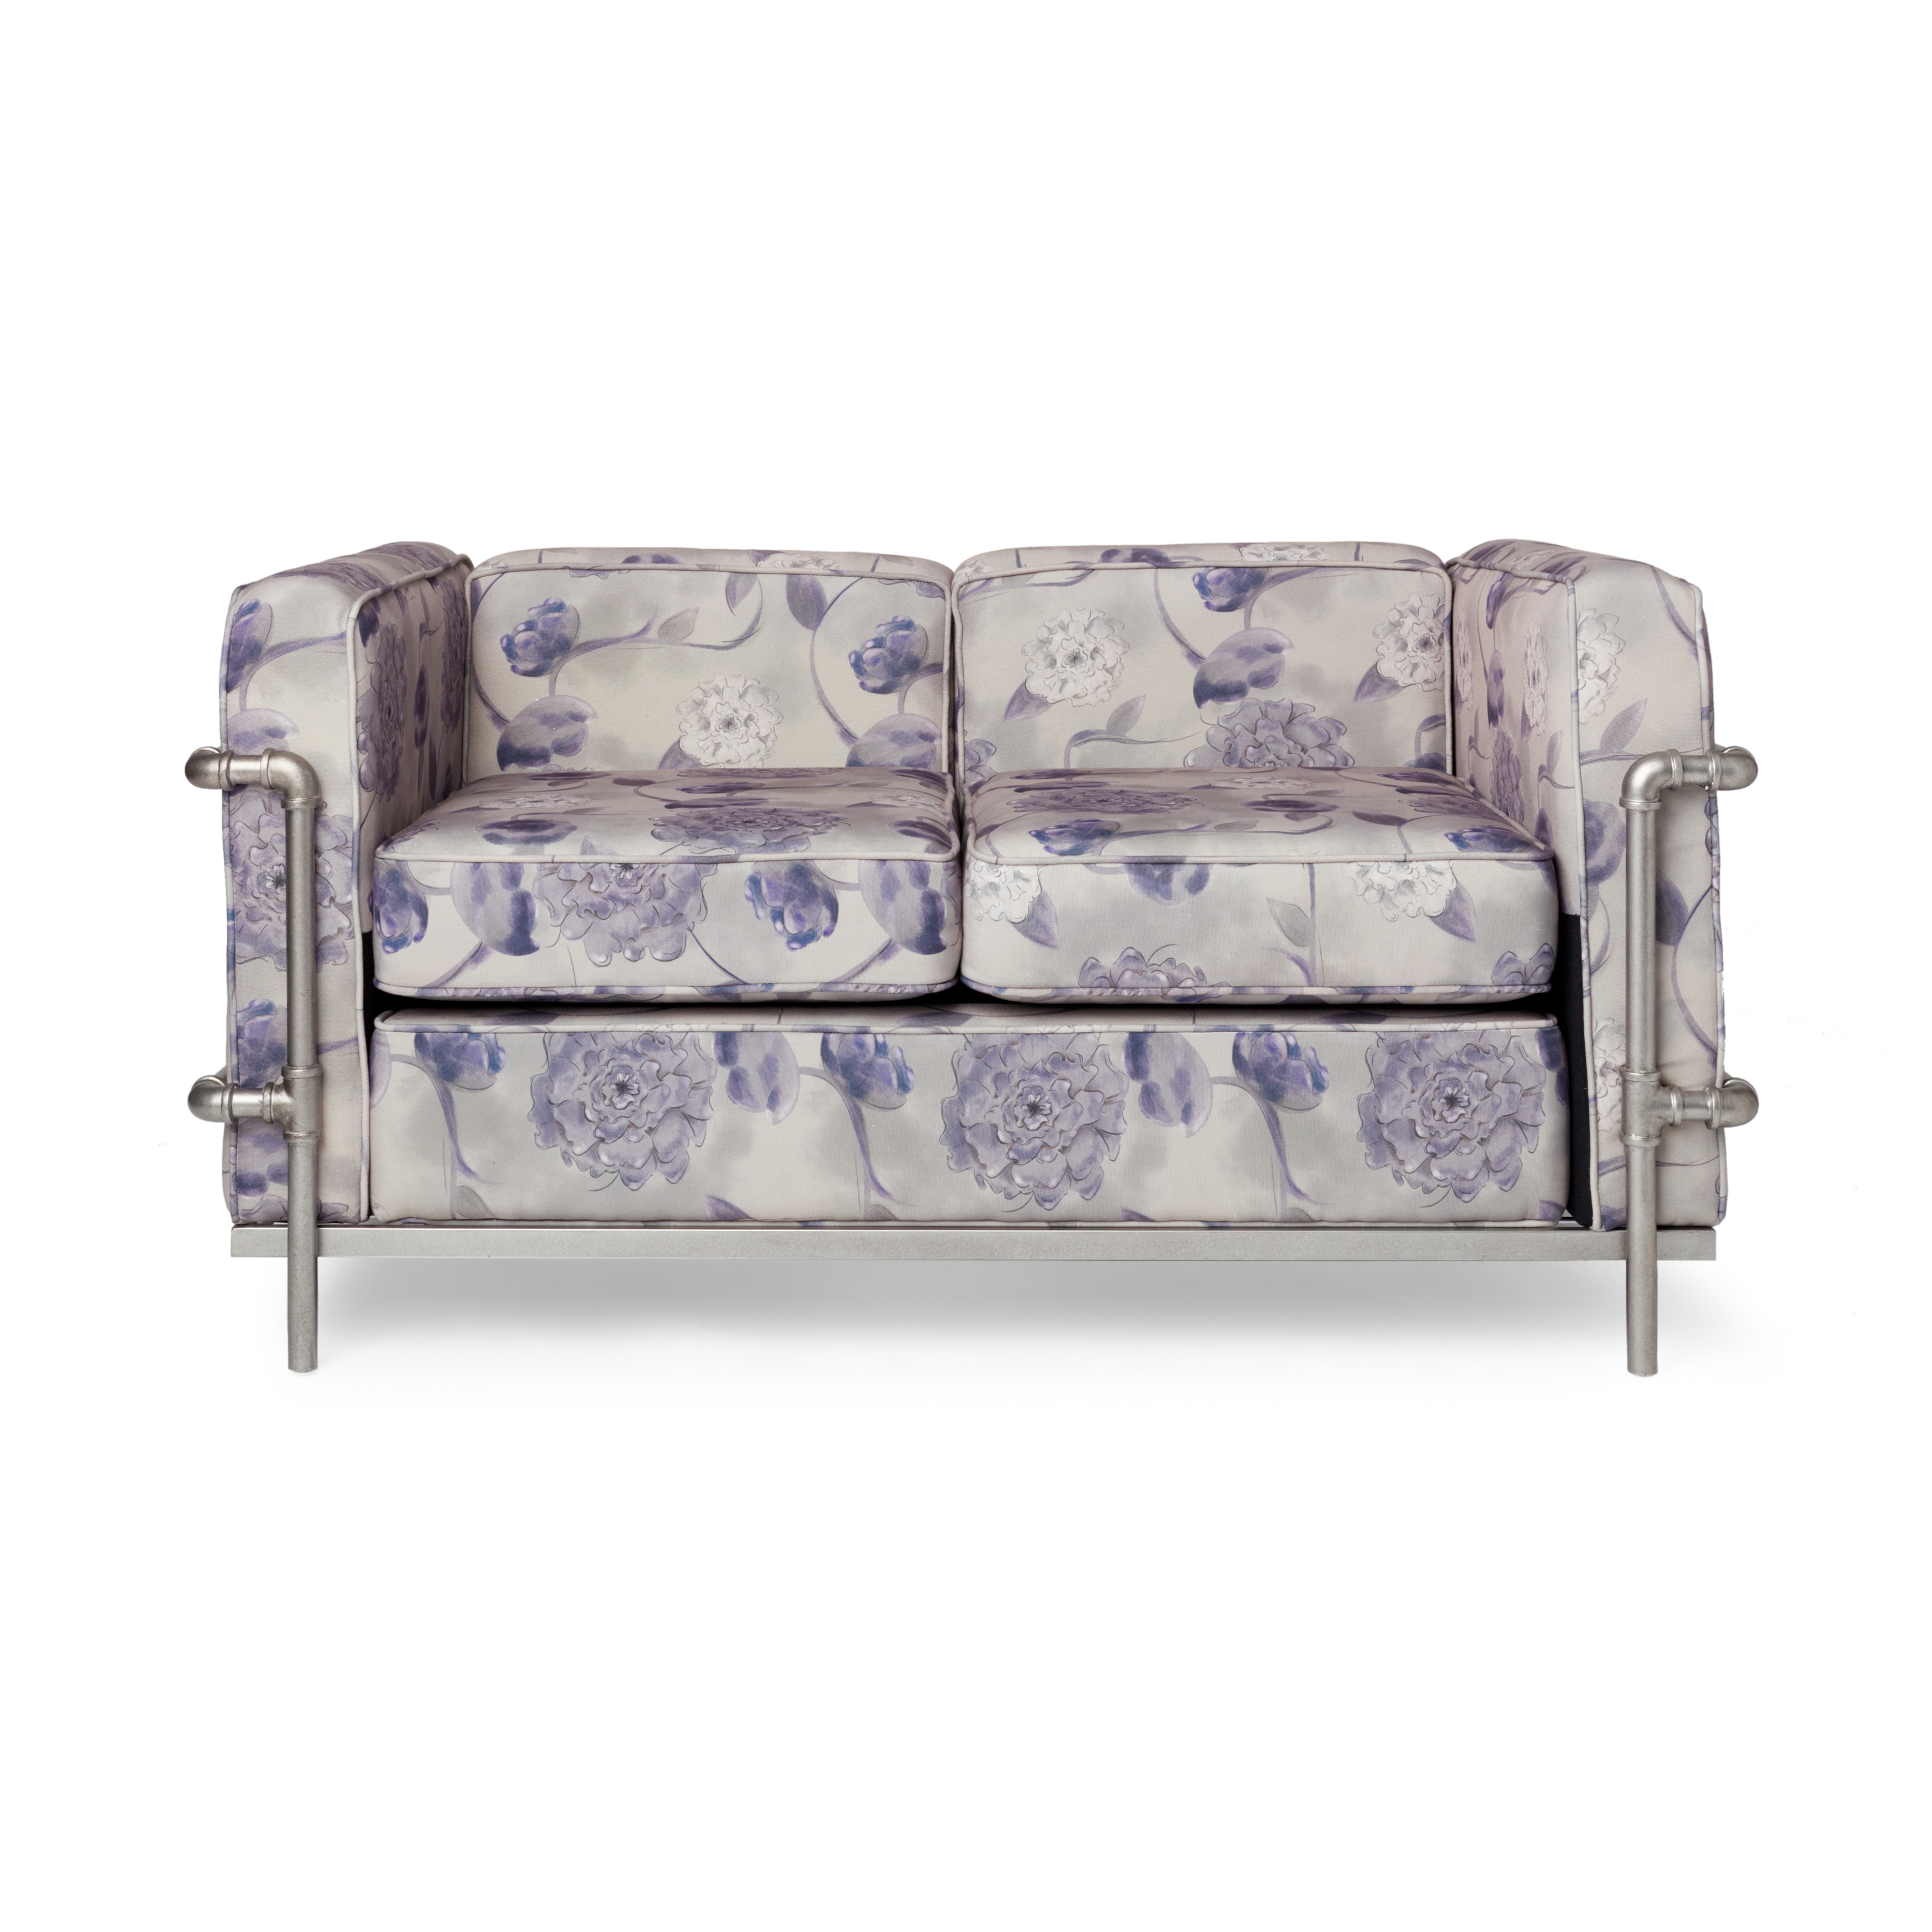 idea sofa vivacious standard typical furniture applied to home measurements inside loveseat dimensions sectional your